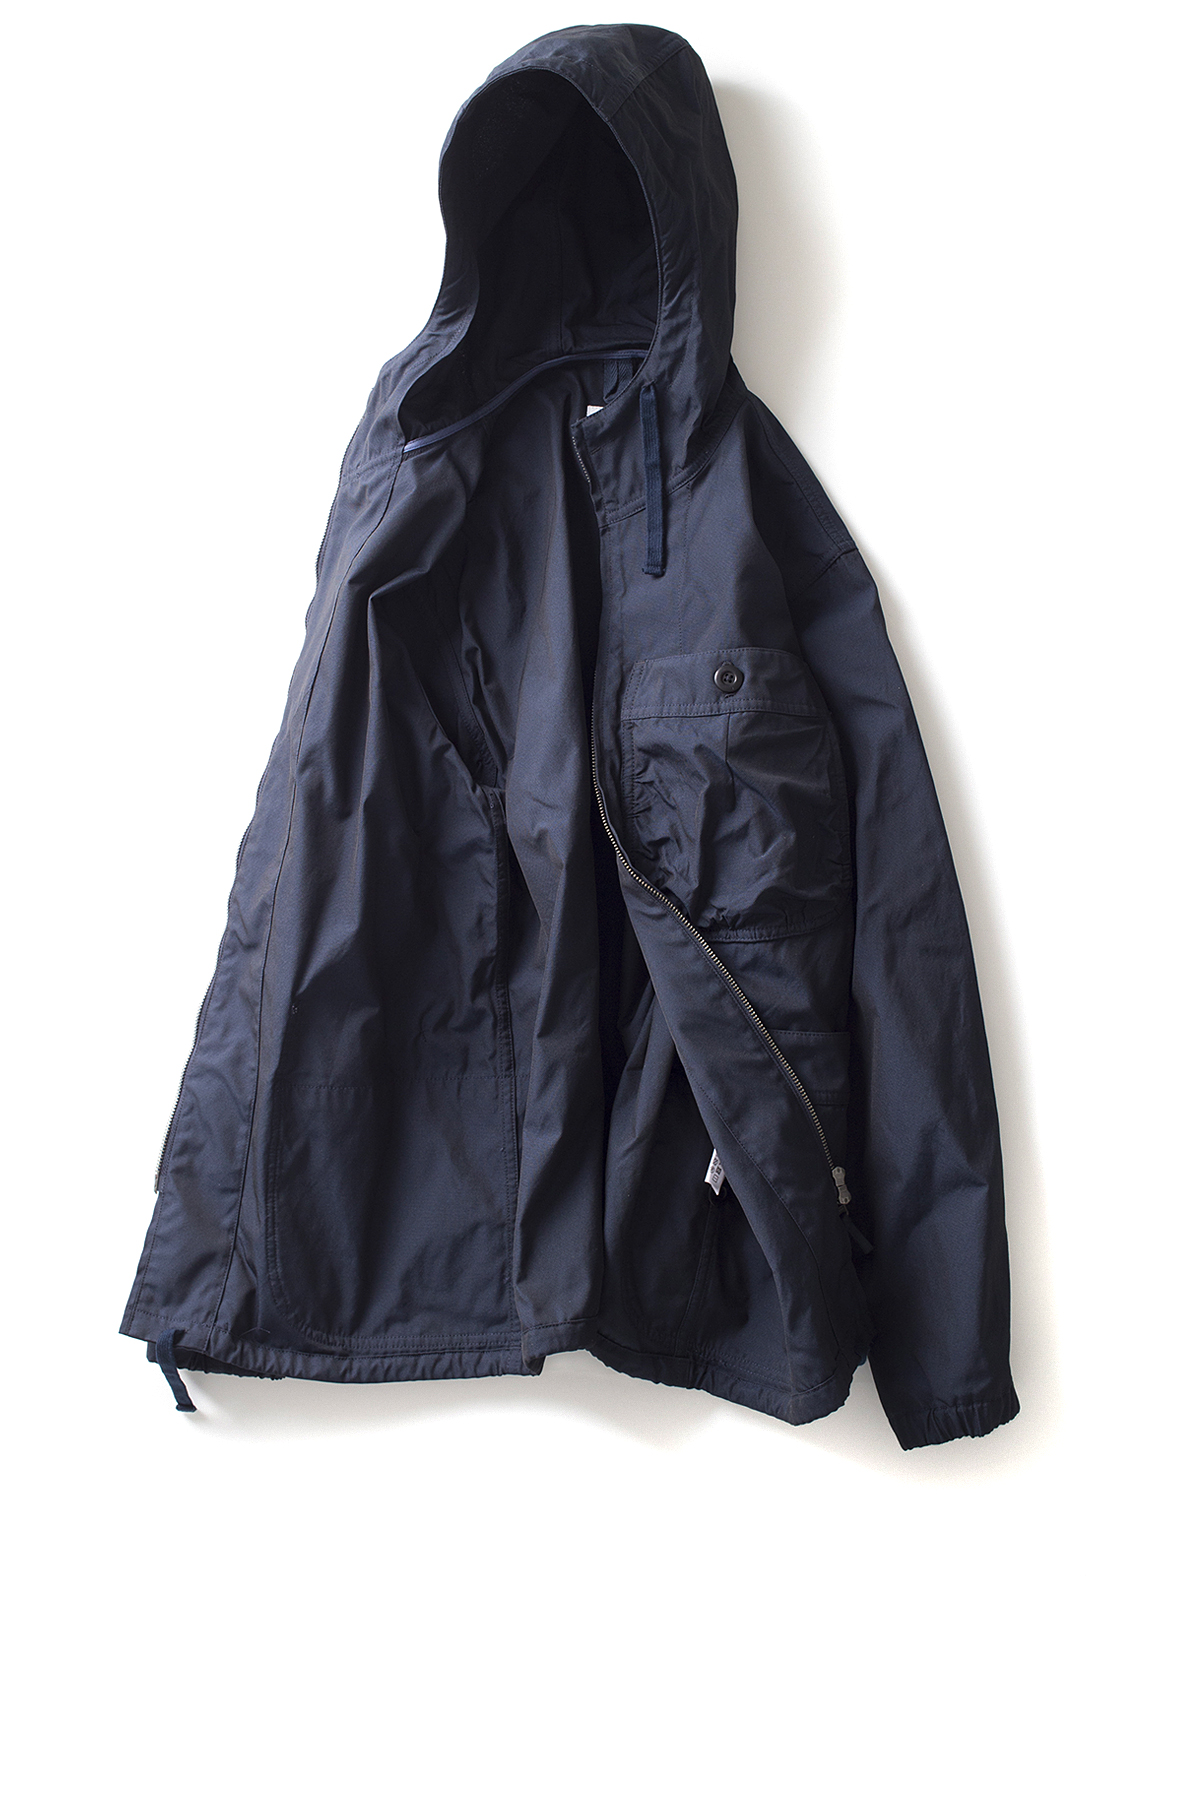 Ts(s) : Gathered Round Pocket Zip-up Parka (Navy)